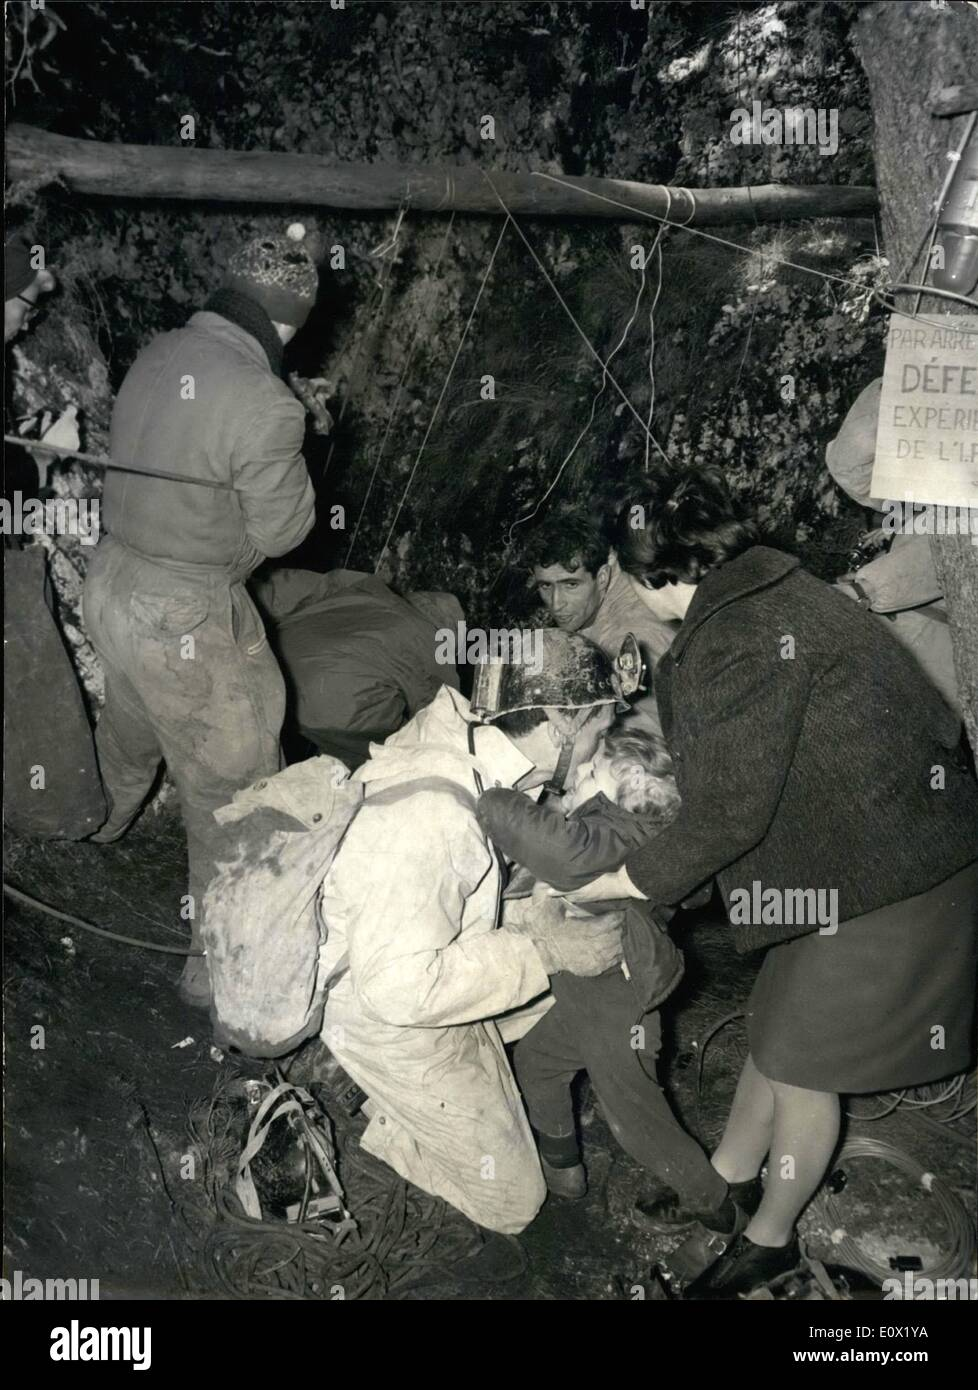 Dec. 12, 1964 - Operation ''Survival'': Cave explorers to say four months underground: Two cave explorers, a man, Antoine Senni, and a woman, Josy Laures will stay four months at 1oo meters below the ground to test the conditions of survival deep underground, the cave is located in a mountain range near Grasse,Souther France. Photo shows Antoine Senni holding his son Herve in his arms prior to starting the scent underground. His wife is next to him. - Stock Image